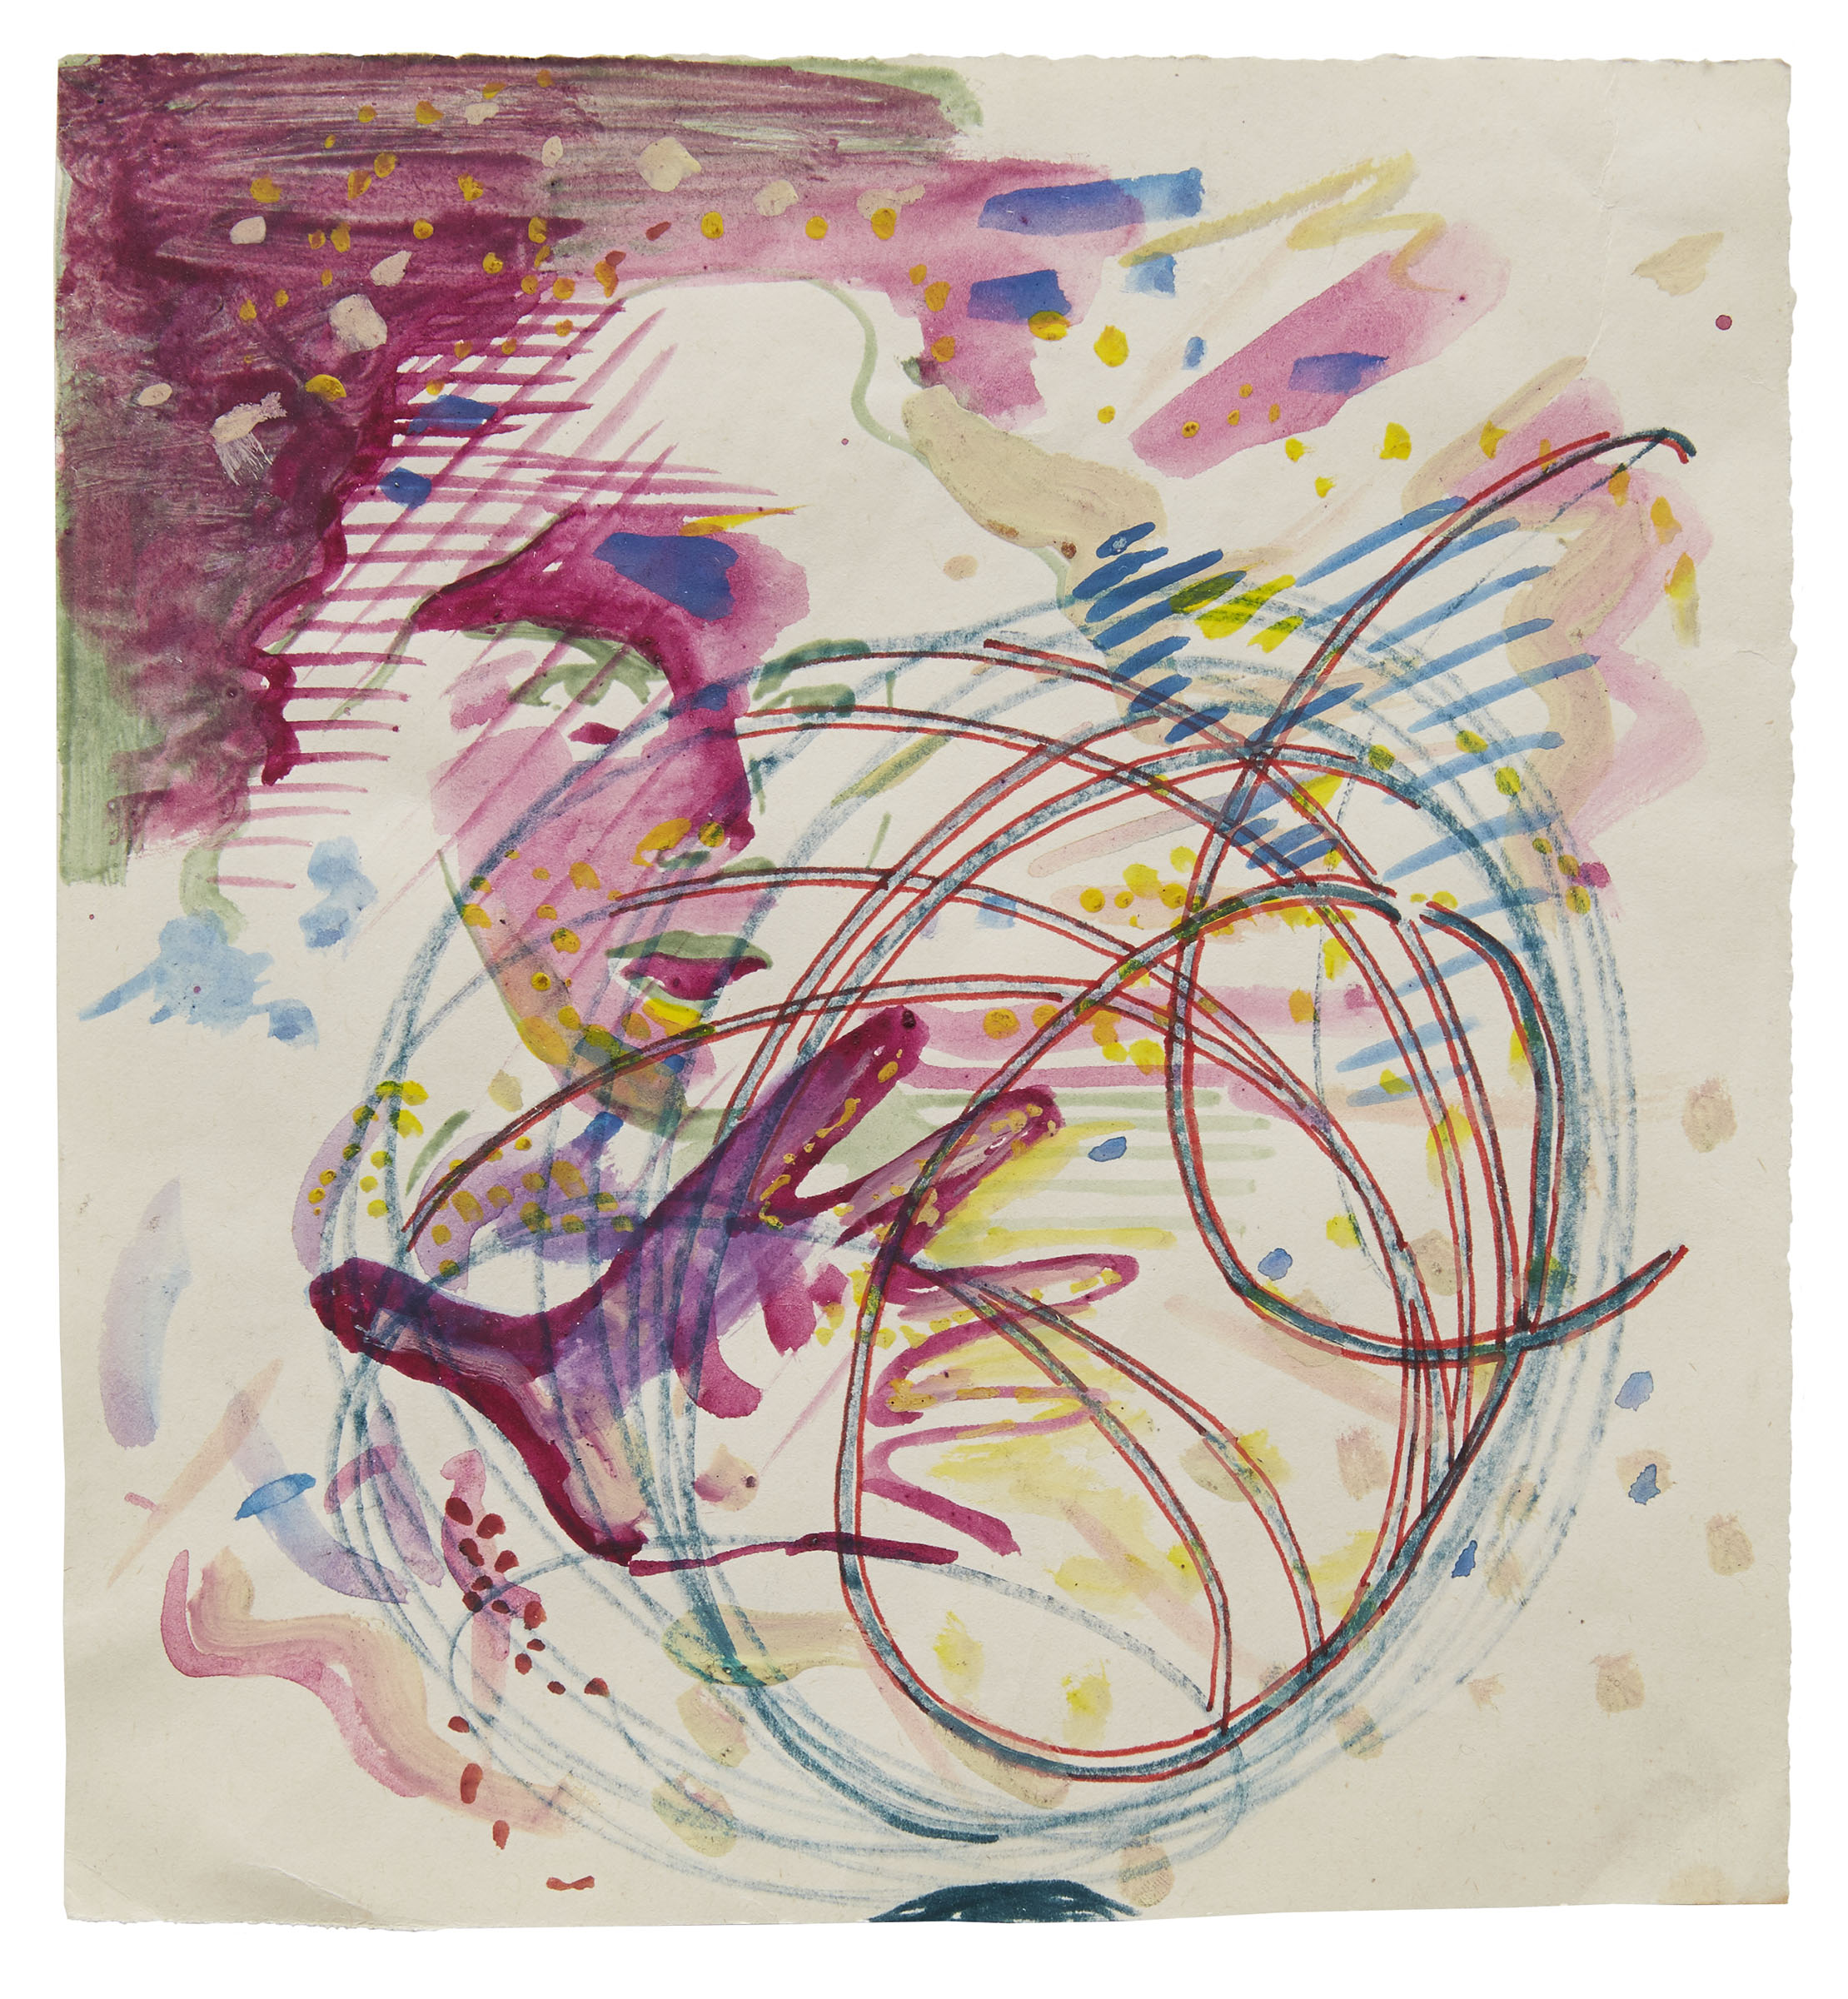 » New York — Sigmar Polke: Early Works on Paper On View at Michael Werner Gallery Through June 7 ...